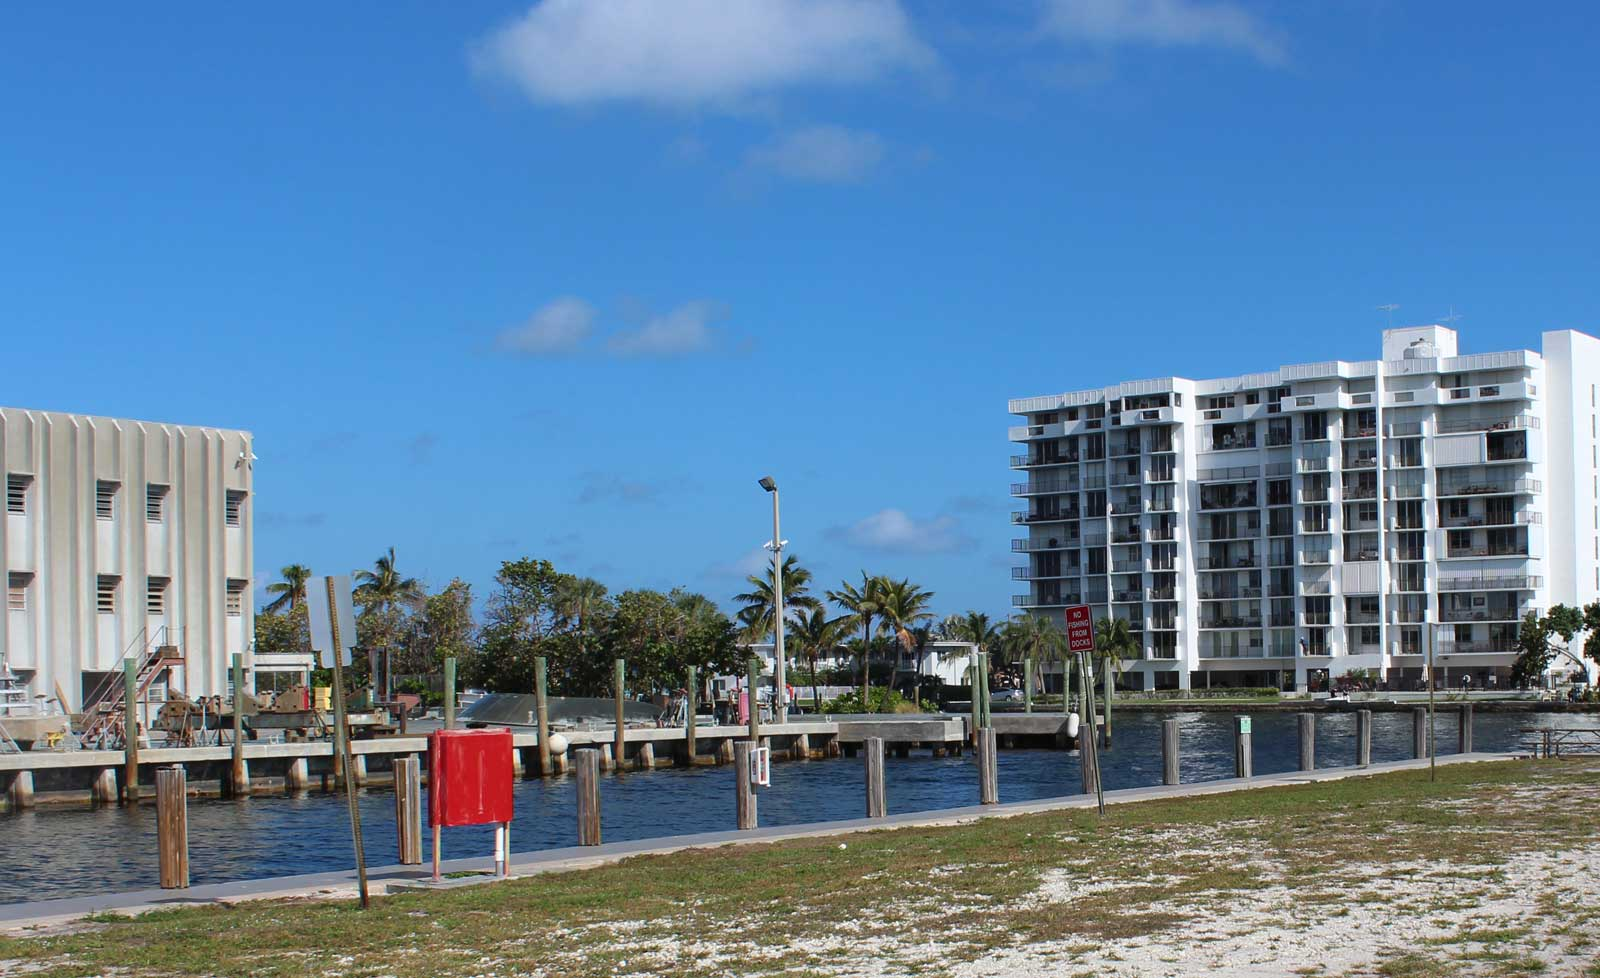 The Aorf Park Boat Ramp Has Ample Parking And Is A Natural Pick Up Point For Pompano Water Taxi Especially On Busy Nights When There Little